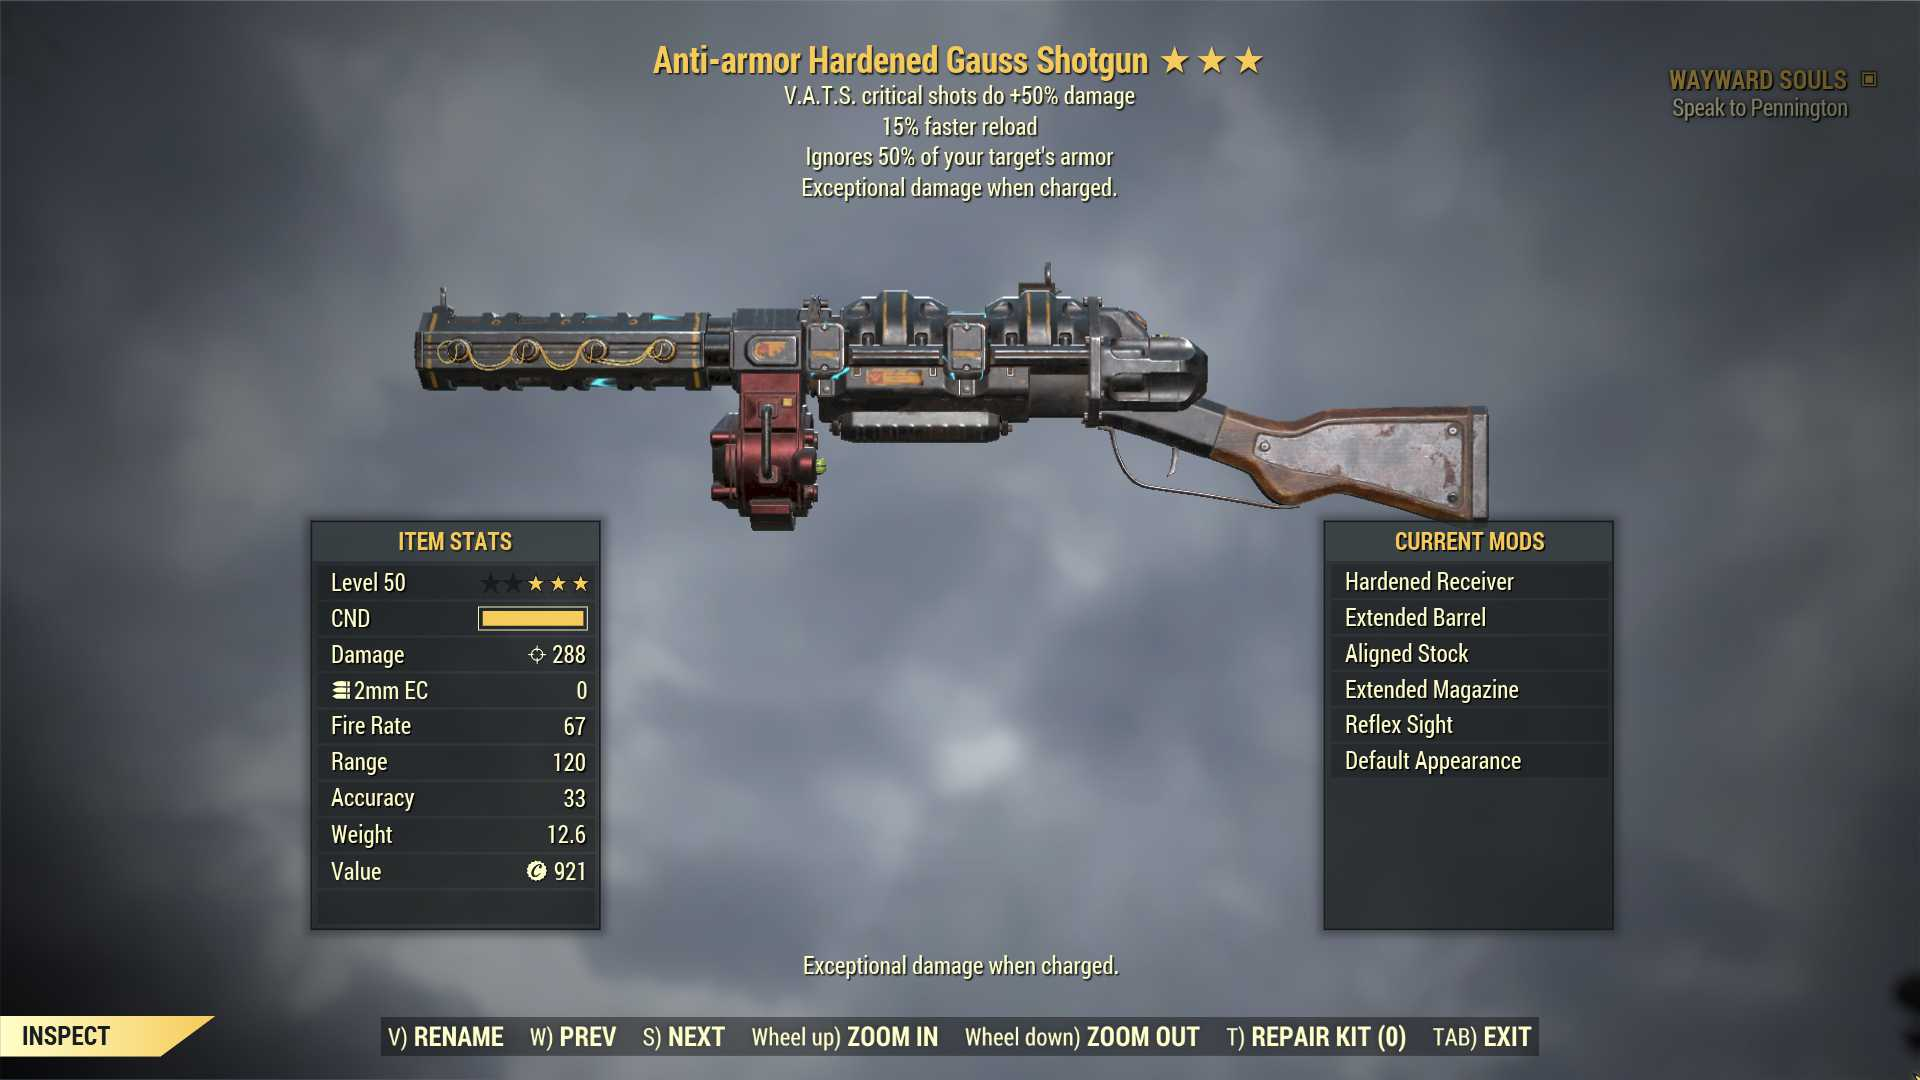 Anti-Armor Gauss Shotgun (+50% critical damage, 15% faster reload) FULL MODDED [Wastelanders]